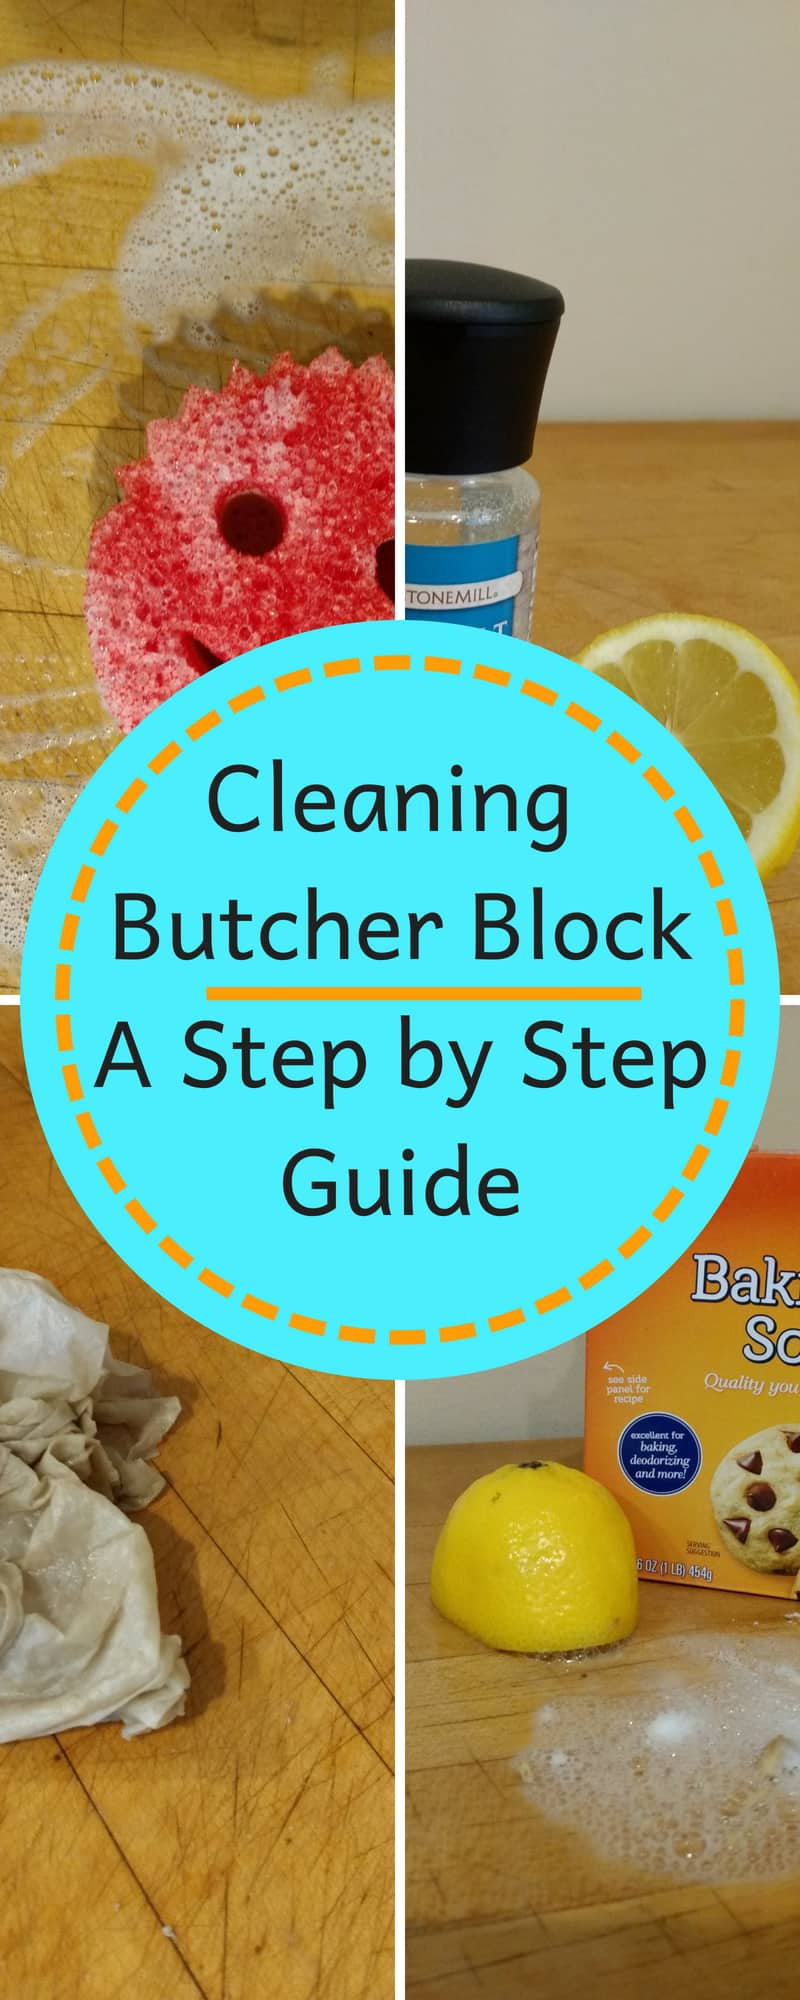 cleaning butcher block